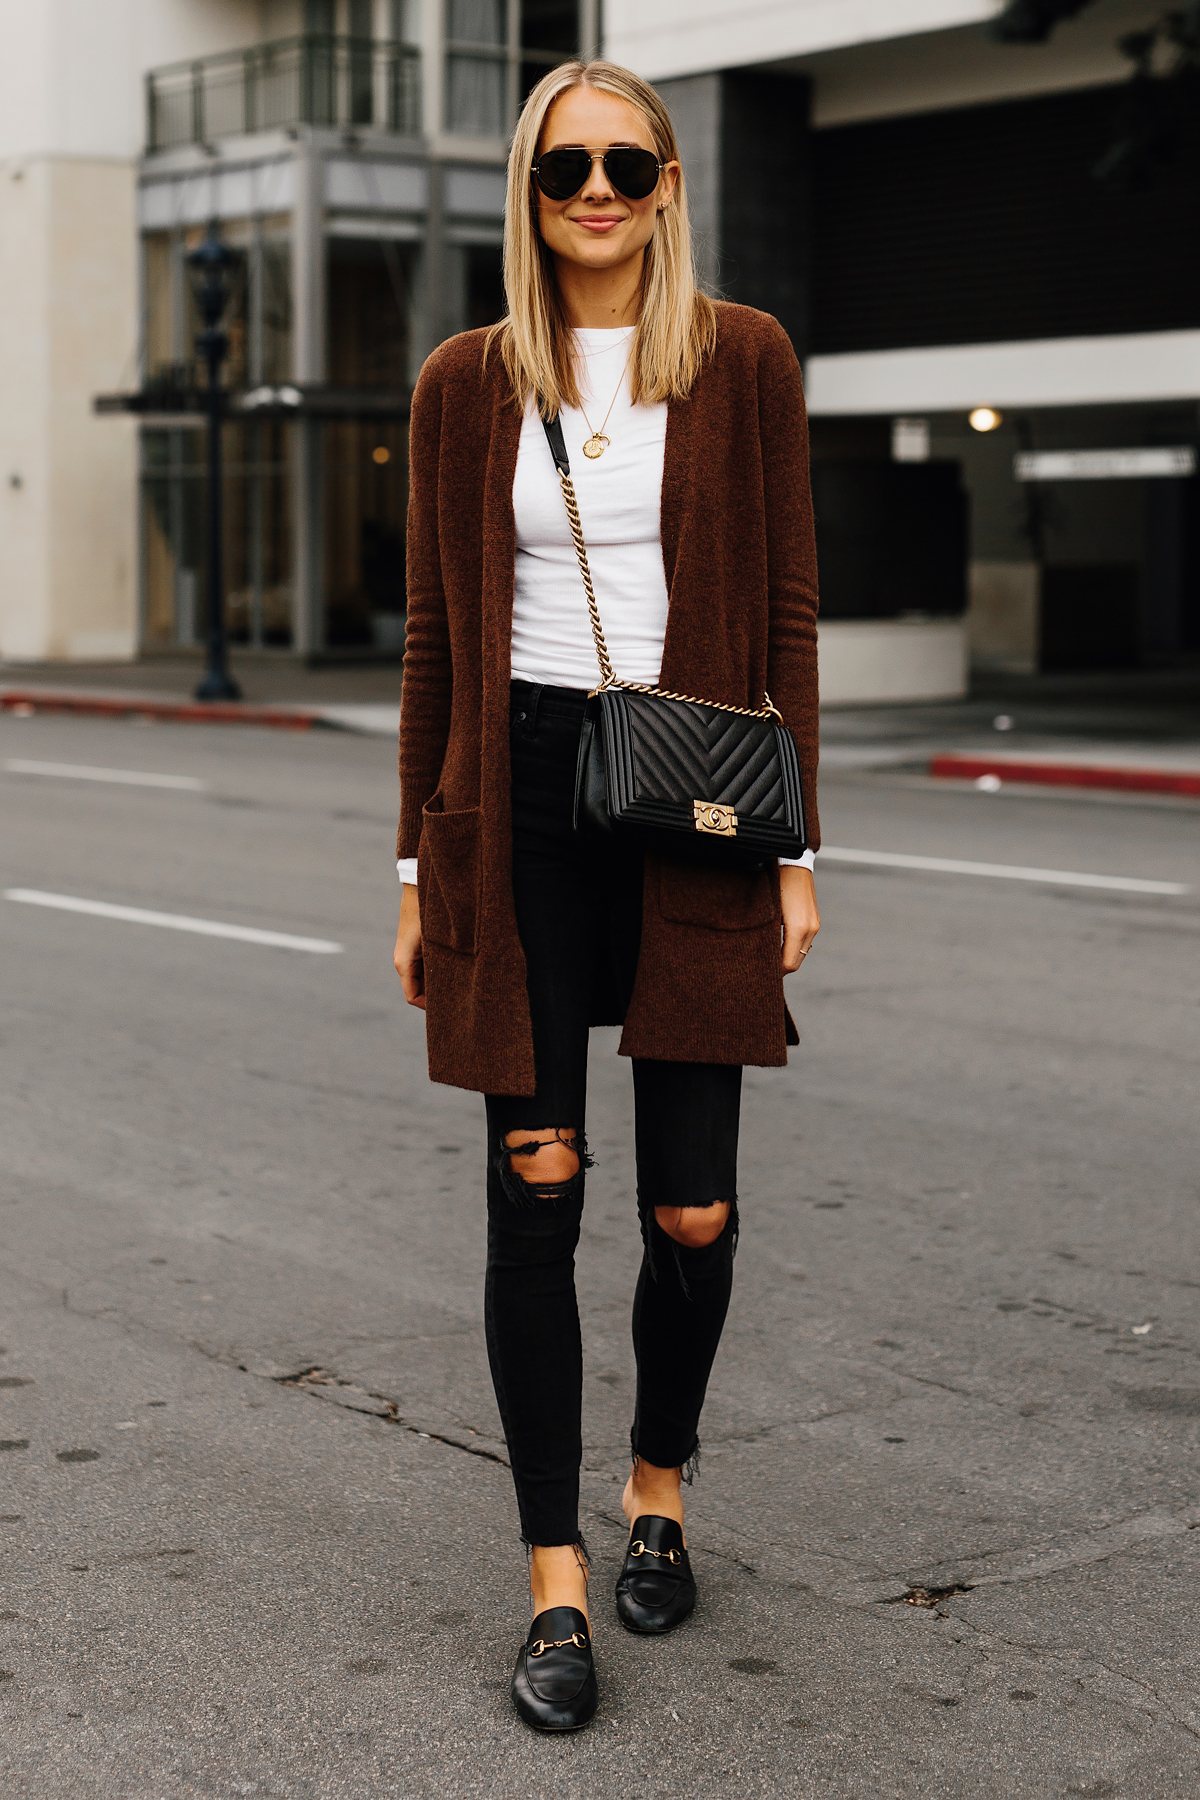 Blonde Woman Wearing Madewell Brown Long Cardigan White Top Madewell Black Ripped Skinny Jeans Gucci Black Princetown Loafer Mules Chanel Black Boy Bag Aviatro Sunglasses Fashion Jackson San Diego Fashion Blogger Street Style